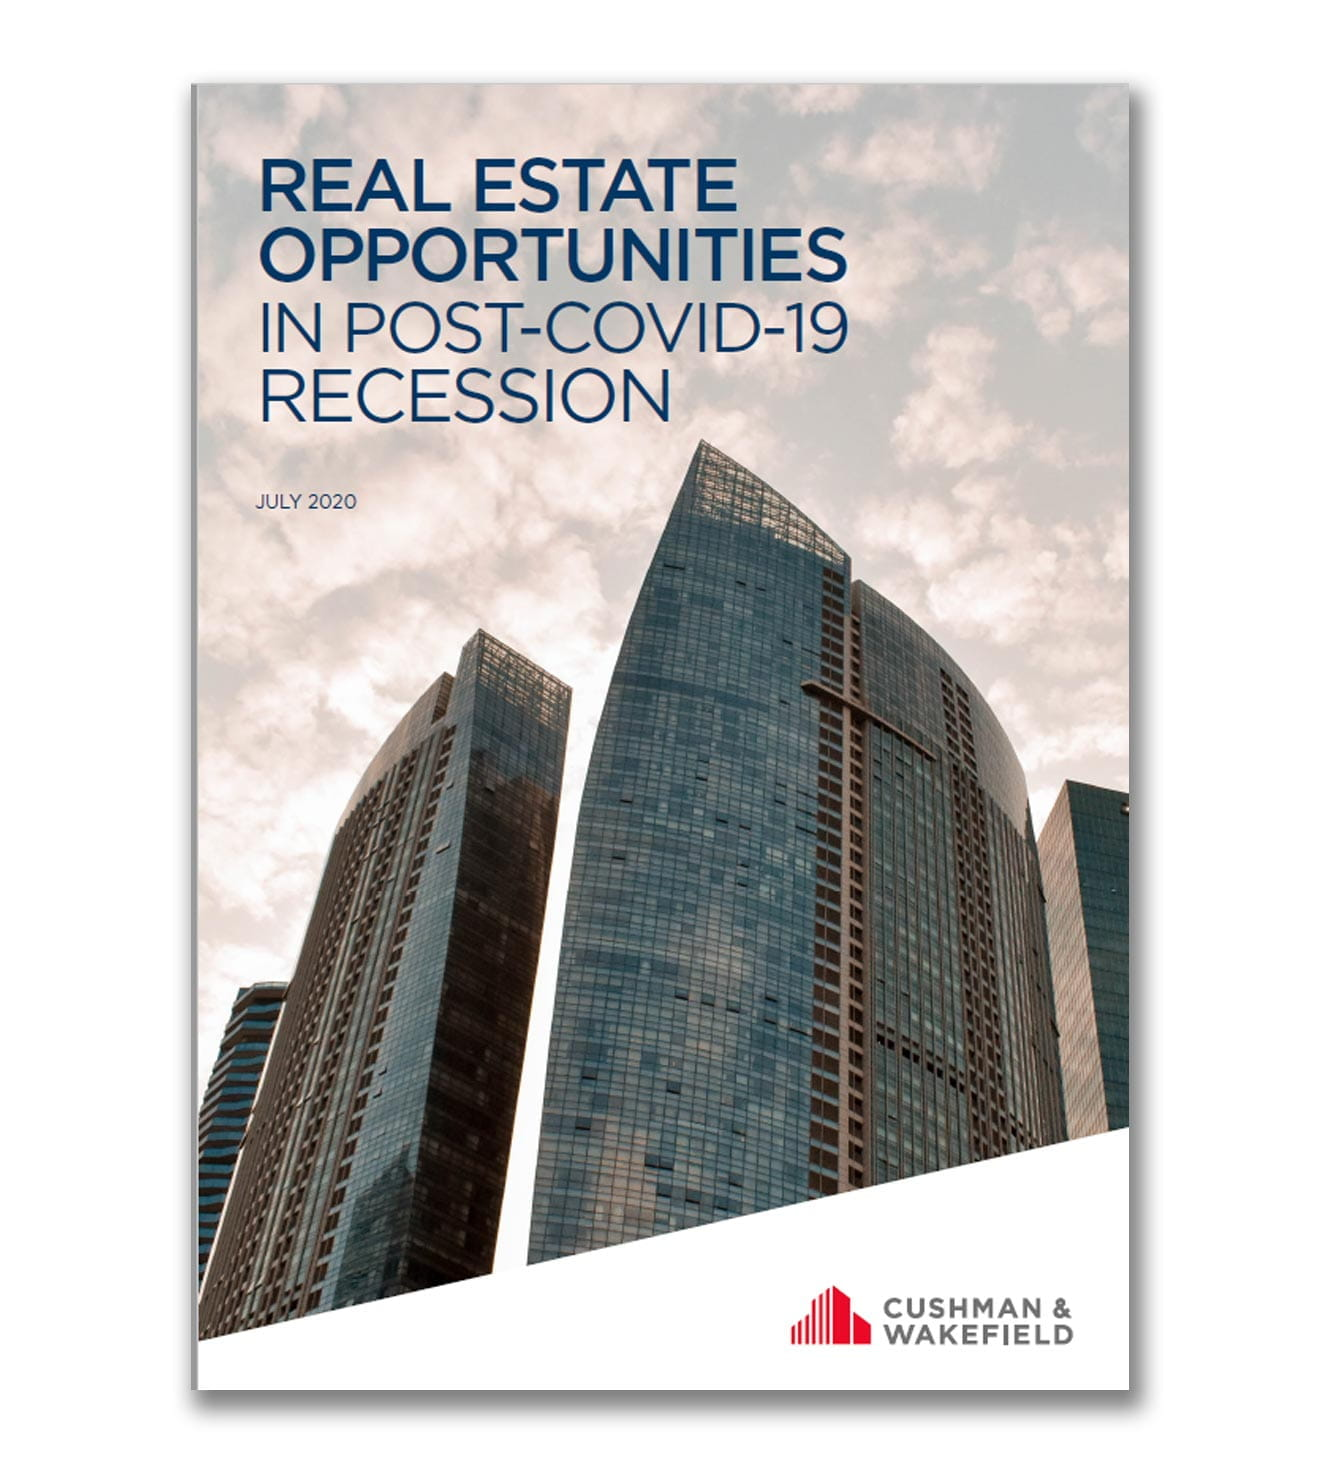 Real estate opportunities in post covid-19 recession